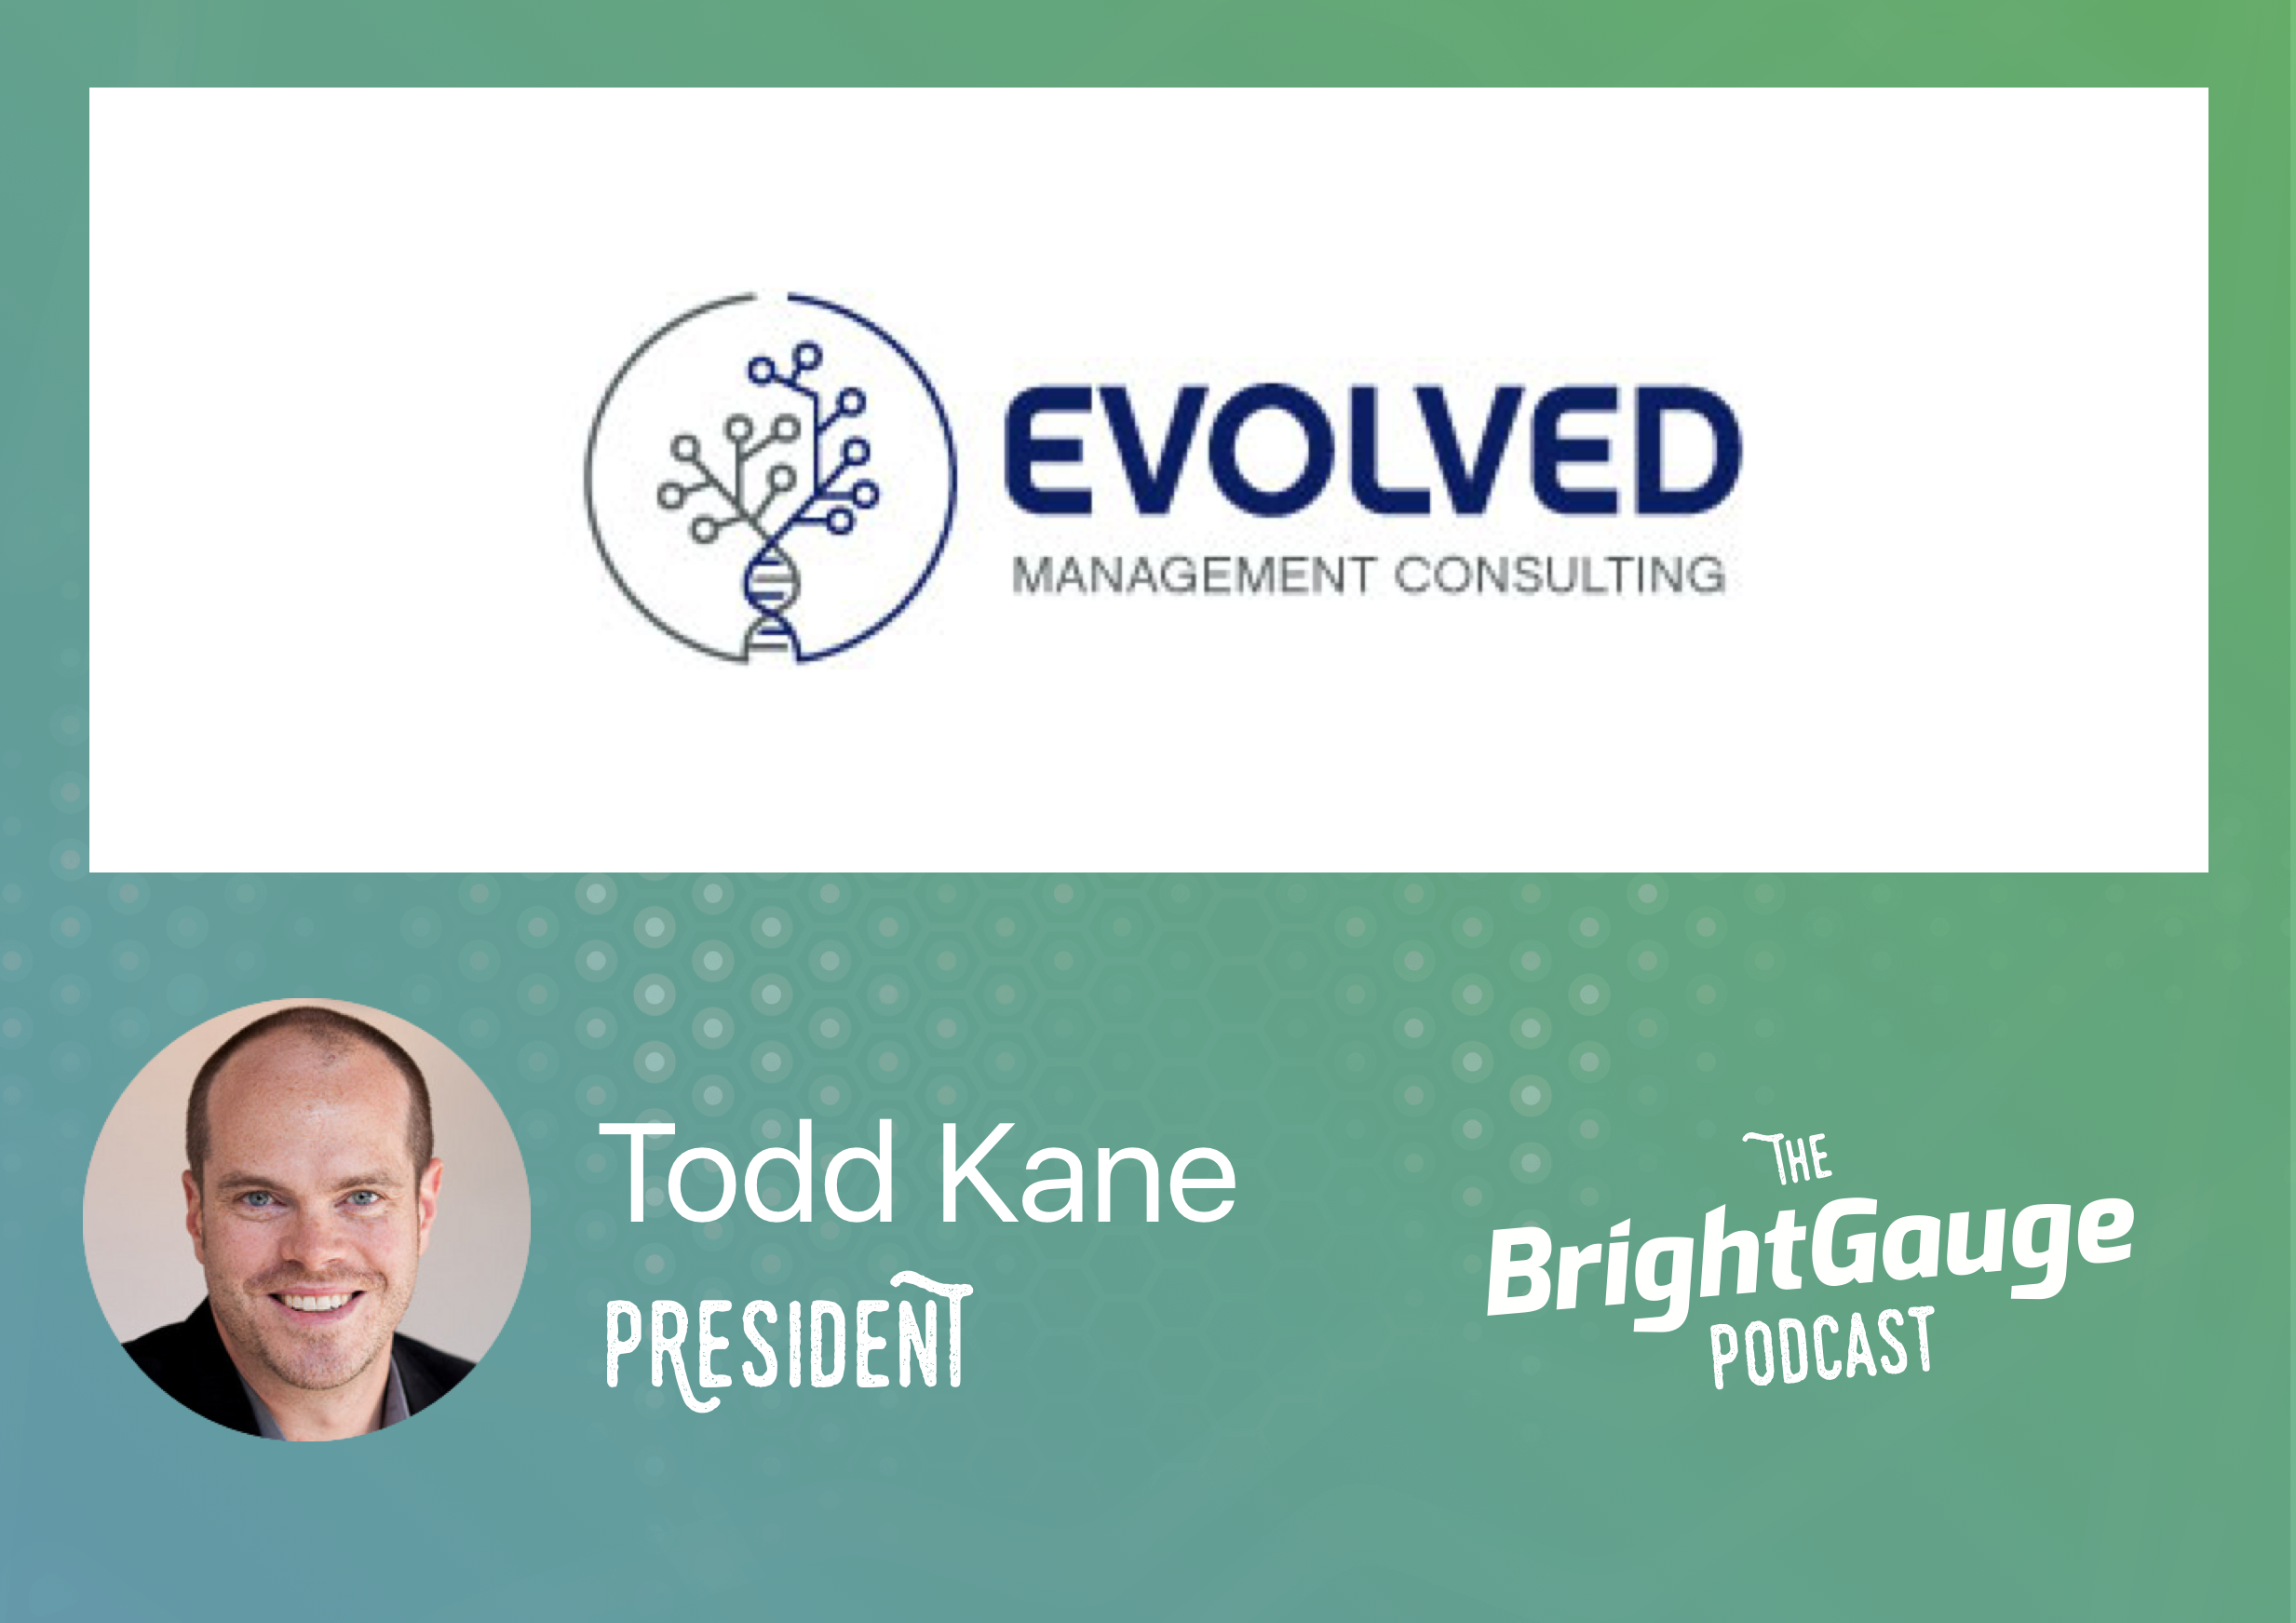 [Podcast] Episode 28 with Todd Kane of Evolved Management